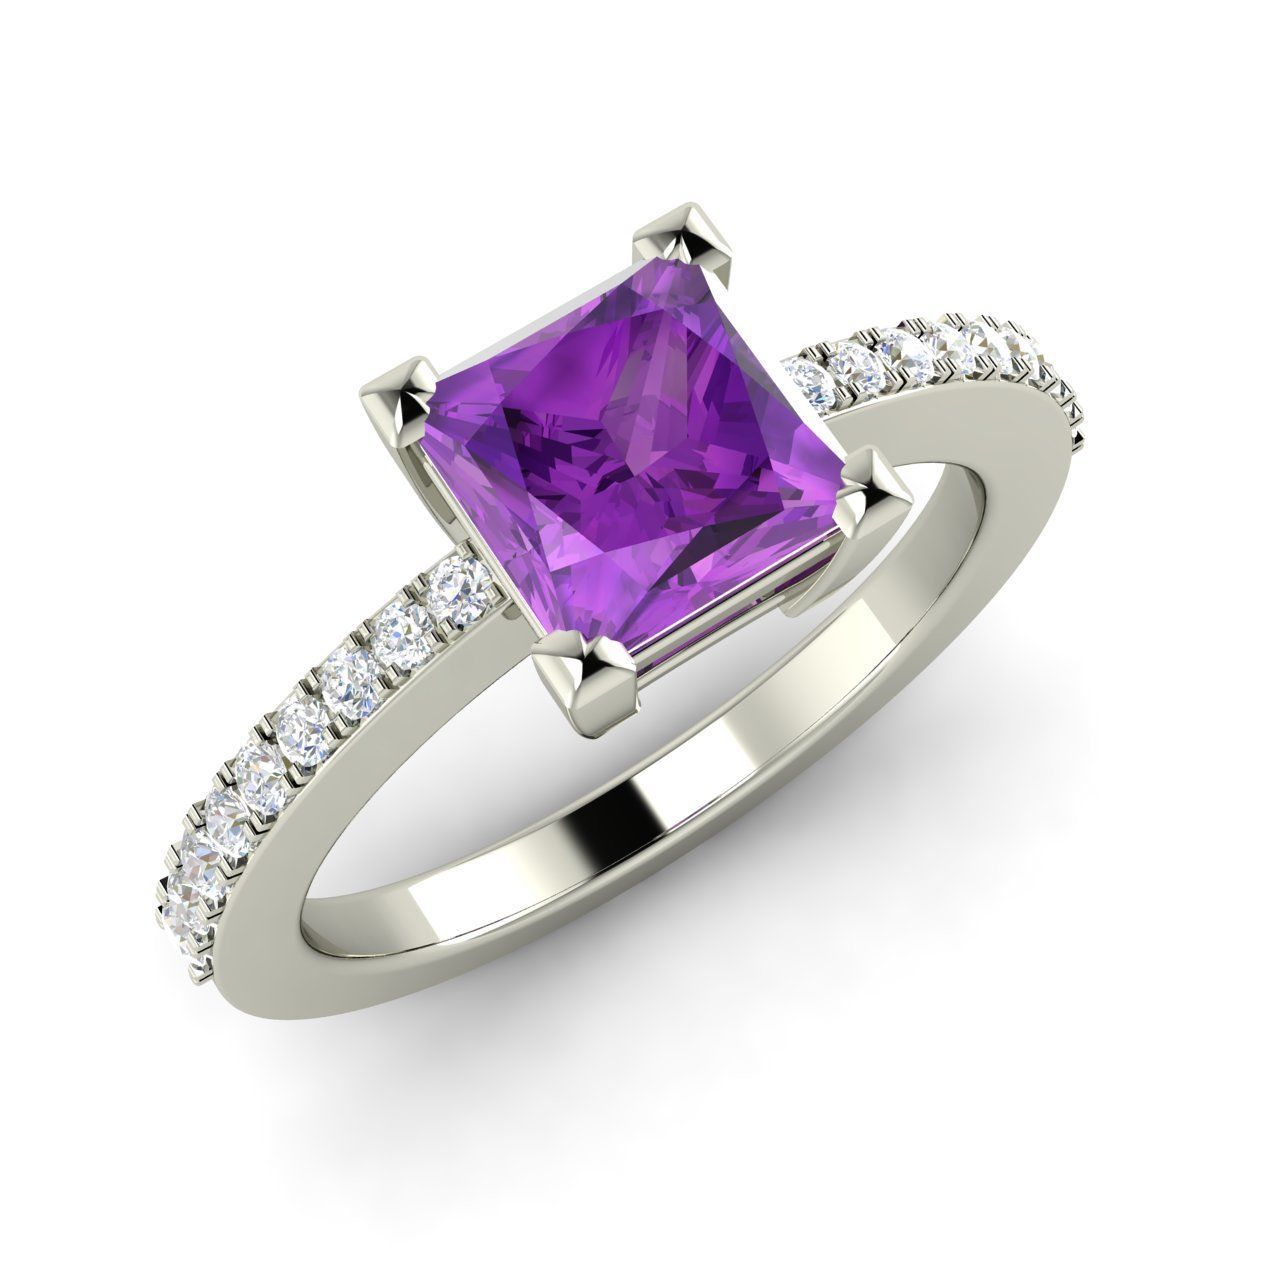 1.25 Ct Natural Amethyst & SI Diamond Engagement Ring in 14K White Gold- Sizable | eBay